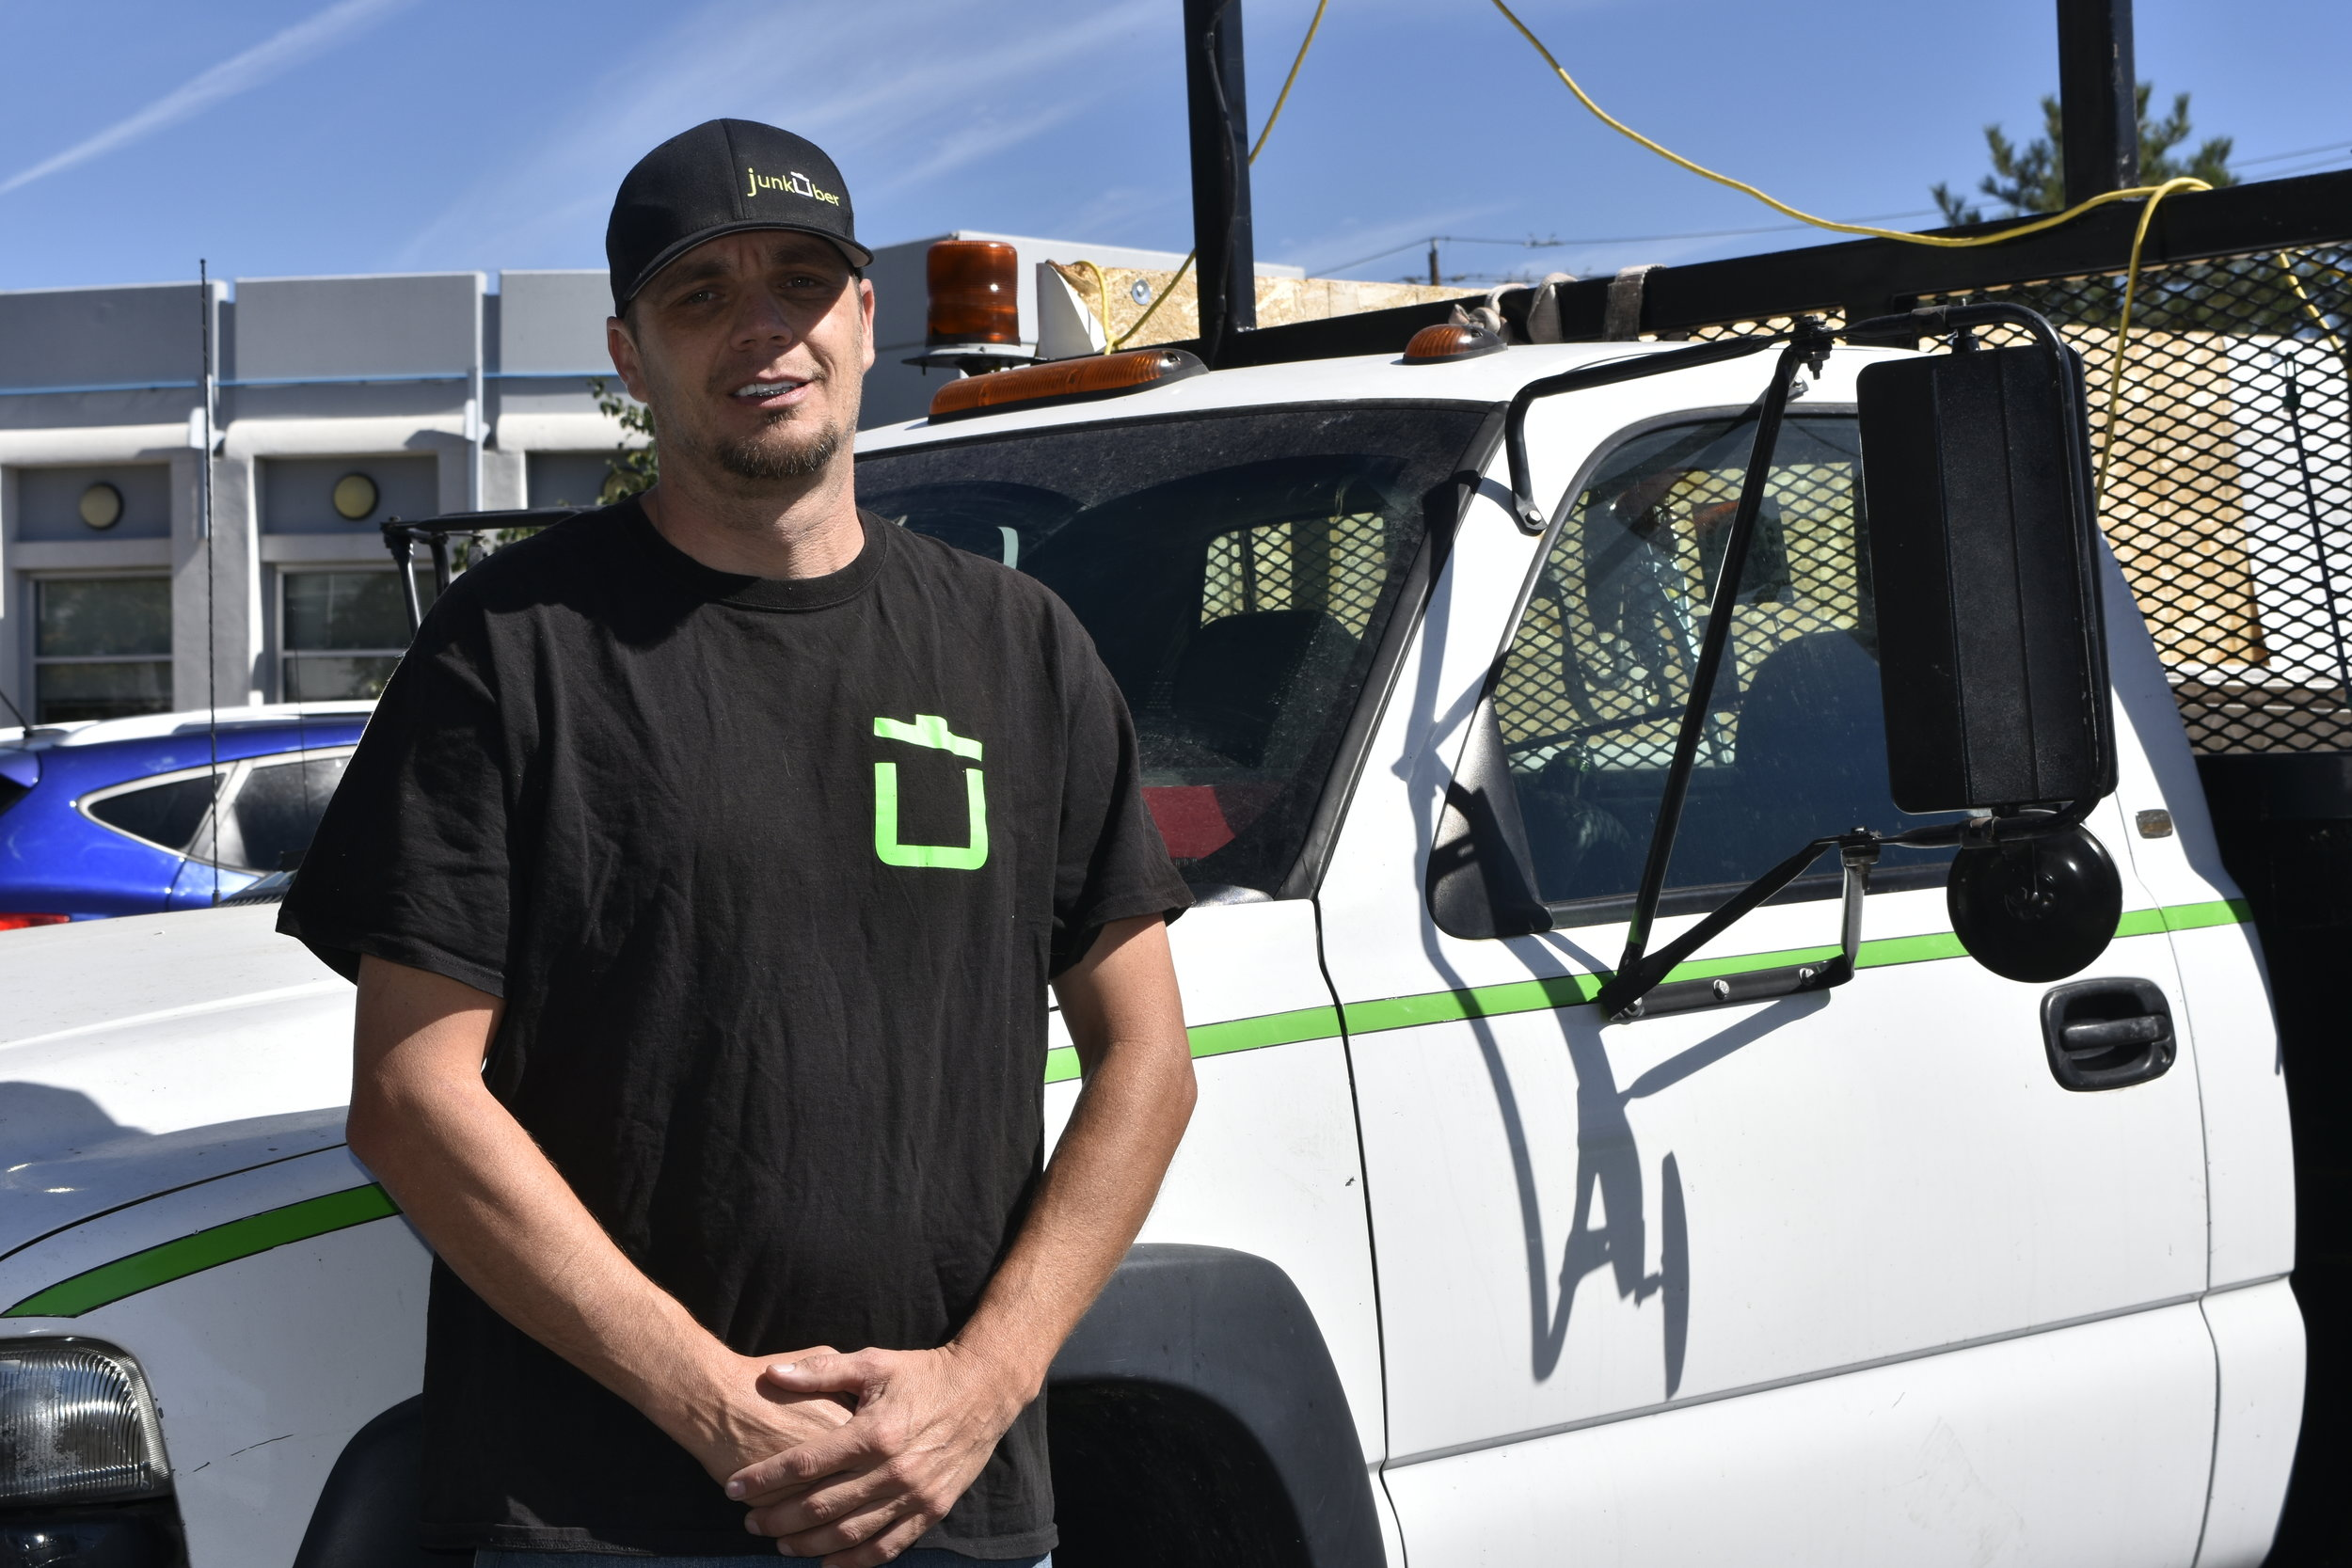 """""""It's eye opening and changes your world. It humbles you,"""" the entrepreneur said of going """"undercover homeless"""" in Reno. Doss, 41, operates the JunkUber.com removal service, but unlike others in his business field, he donates back to the homeless and those without many means moving into new residences. He also took part in an outreach initiative for the homeless several years ago, going undercover and walking in their shoes for a few days. Photo by Jordan Blevins and reporting by Prince Nesta for Our Town Reno."""